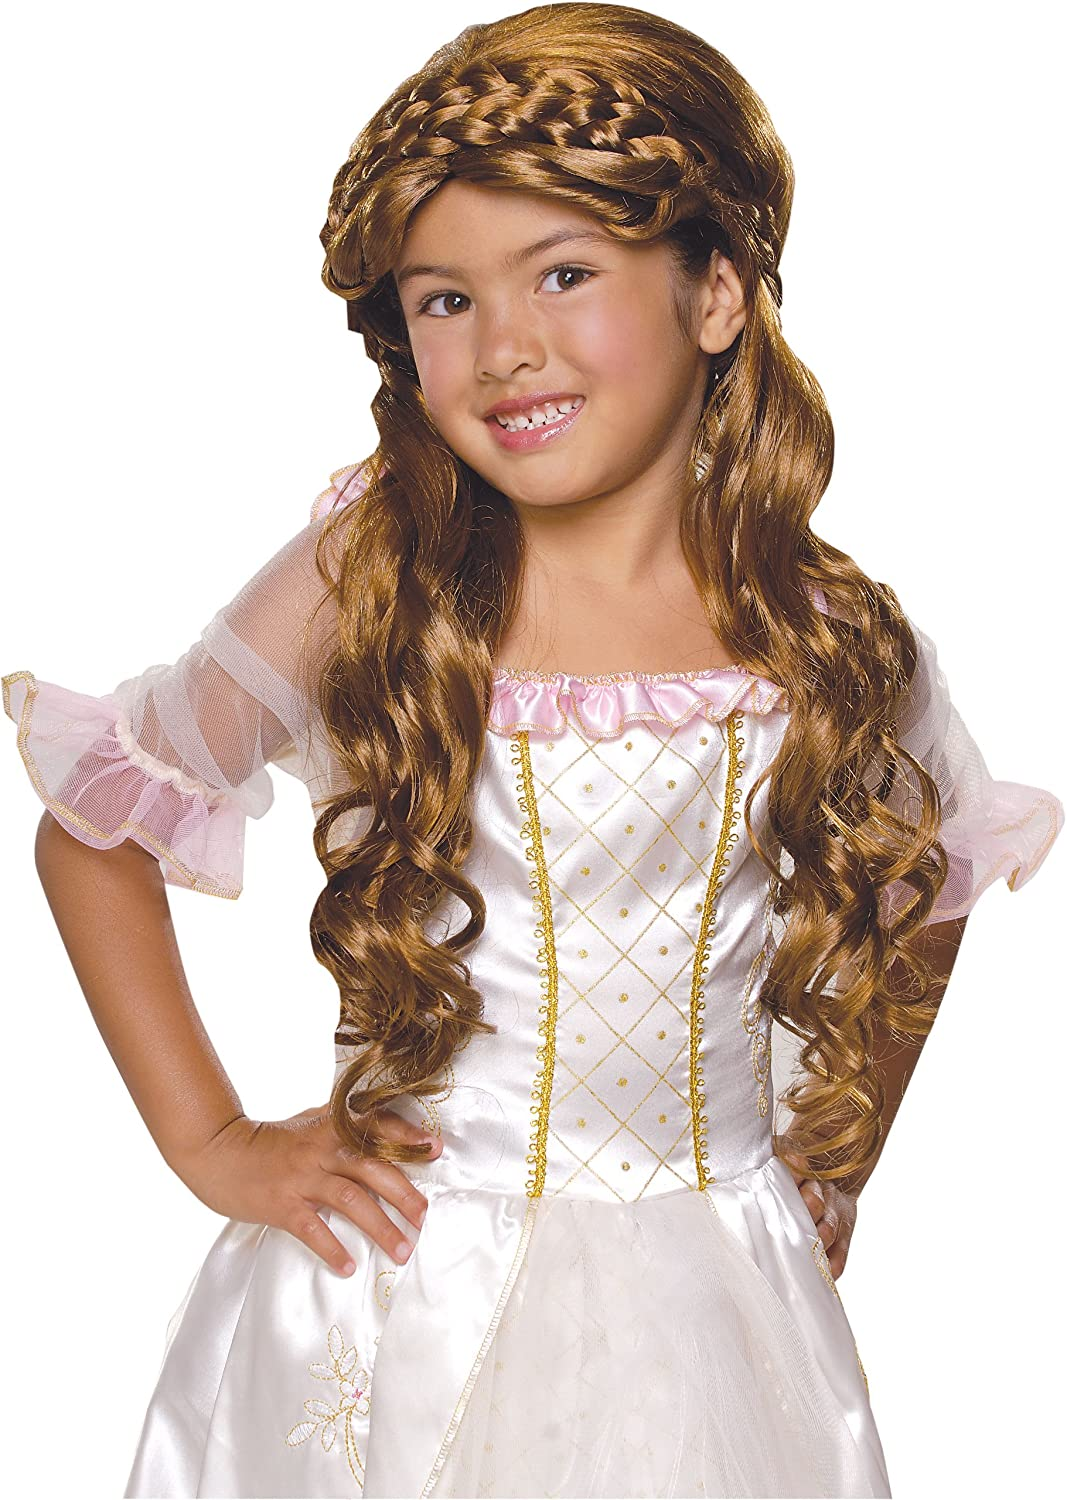 Rubie's Costume Co Enchanted Princess Child's Wig, Blonde Rubie's Costume Co. 51415